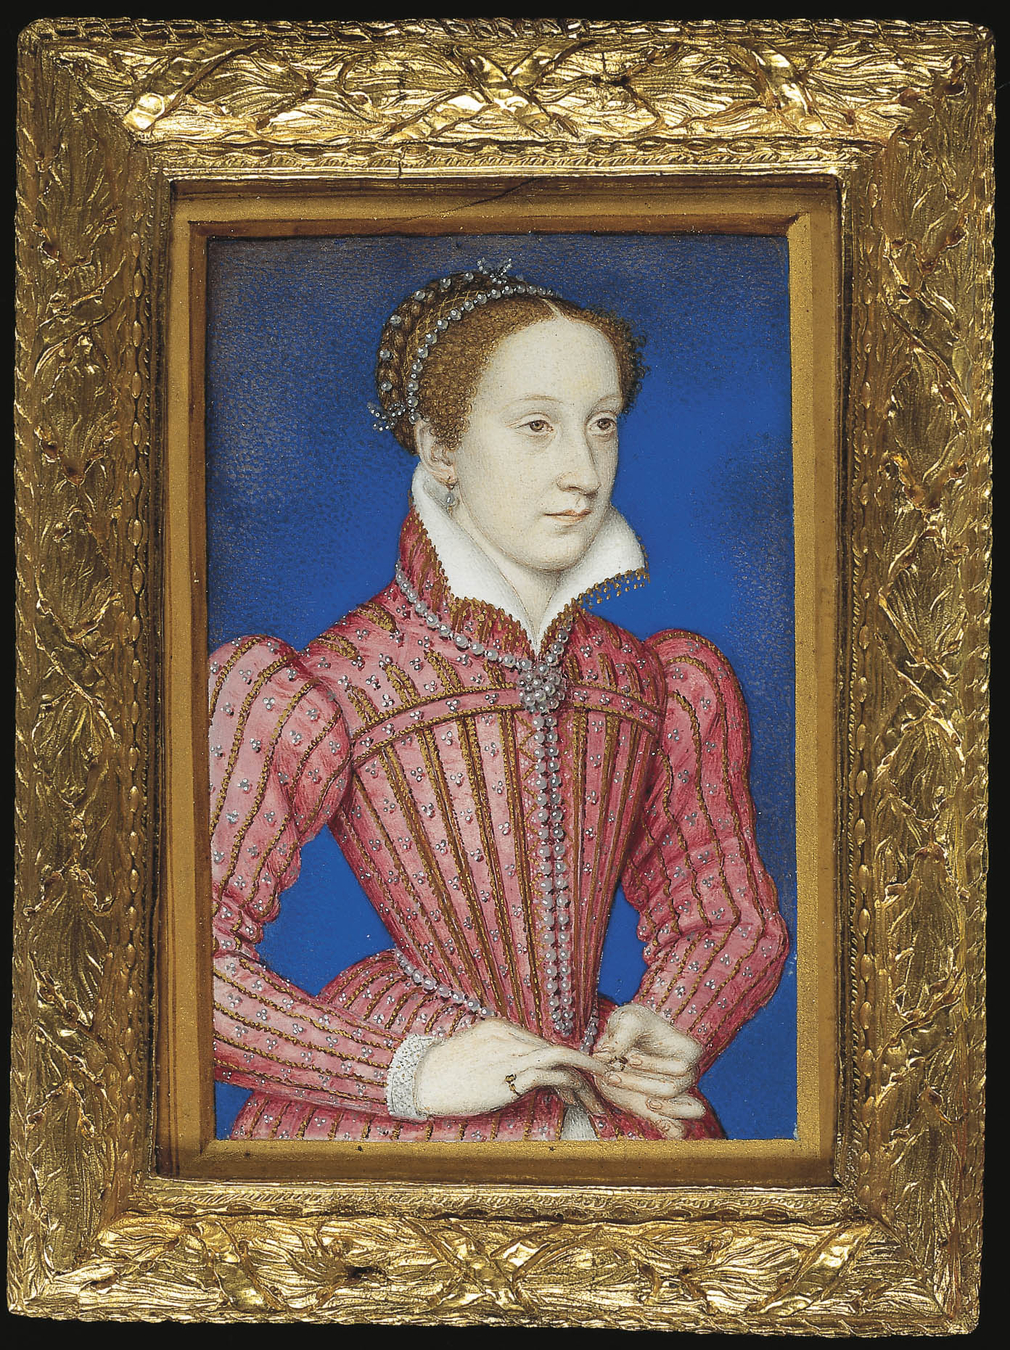 In 1564 Sir James Melville, Ambassador of Mary, Queen of Scots (1542–87), was shown some portrait miniatures belonging to Elizabeth I. The English Queen 'took out the Queen's [Mary, Queen of Scots'] picture, and kissed it'. I